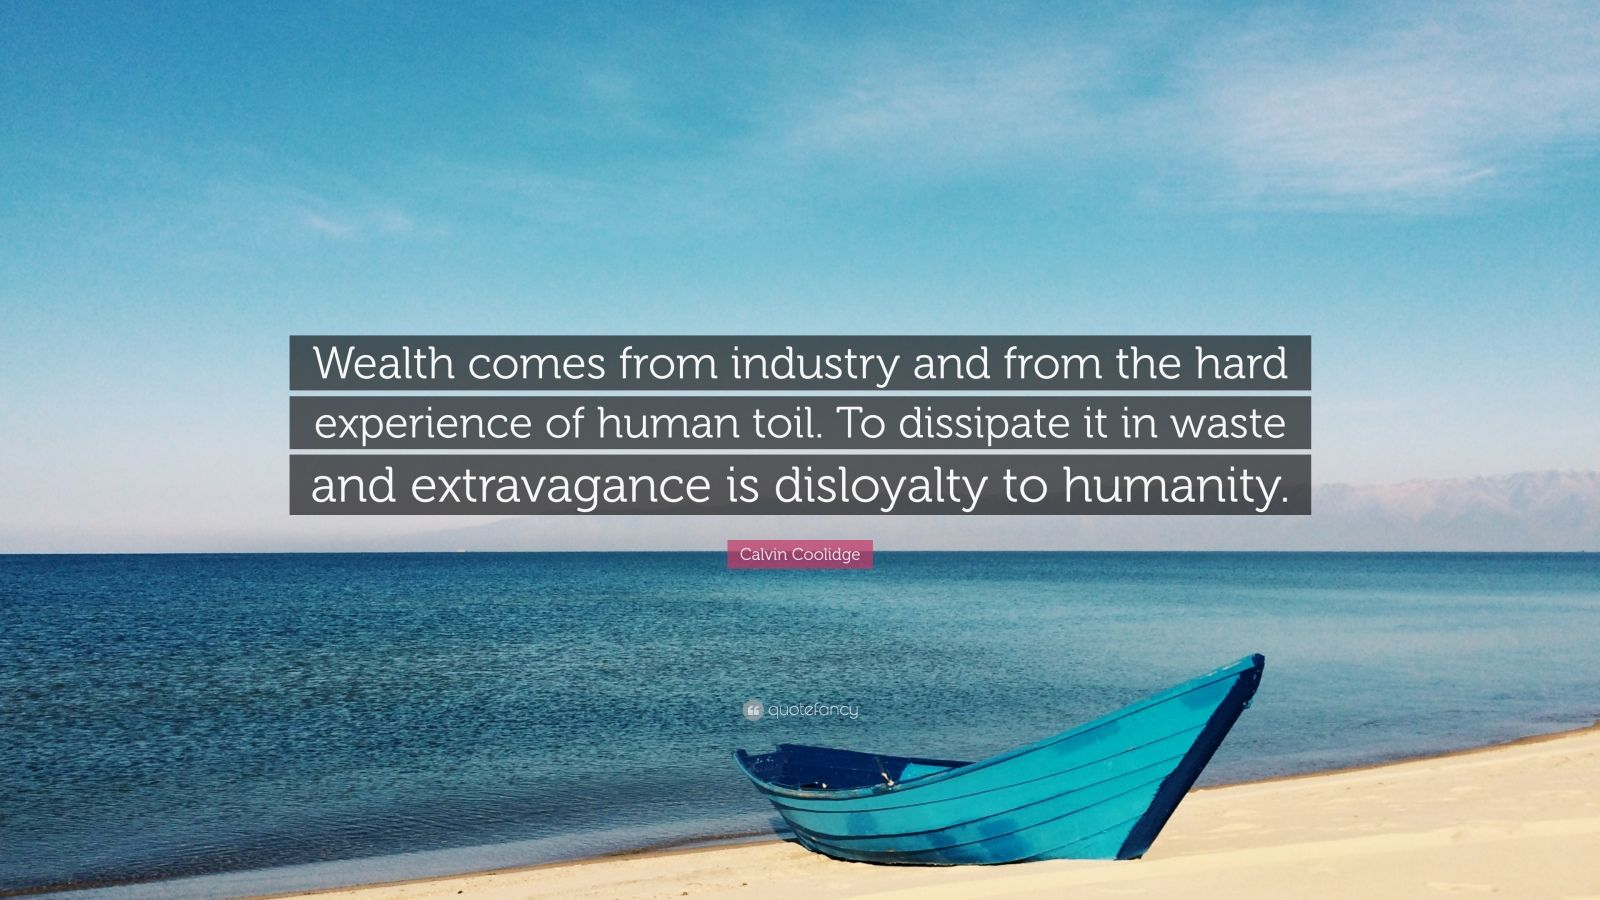 """Calvin Coolidge Quote: """"Wealth comes from industry and from the hard experience of human toil. To dissipate it in waste and extravagance is disloyalty to humanity."""""""